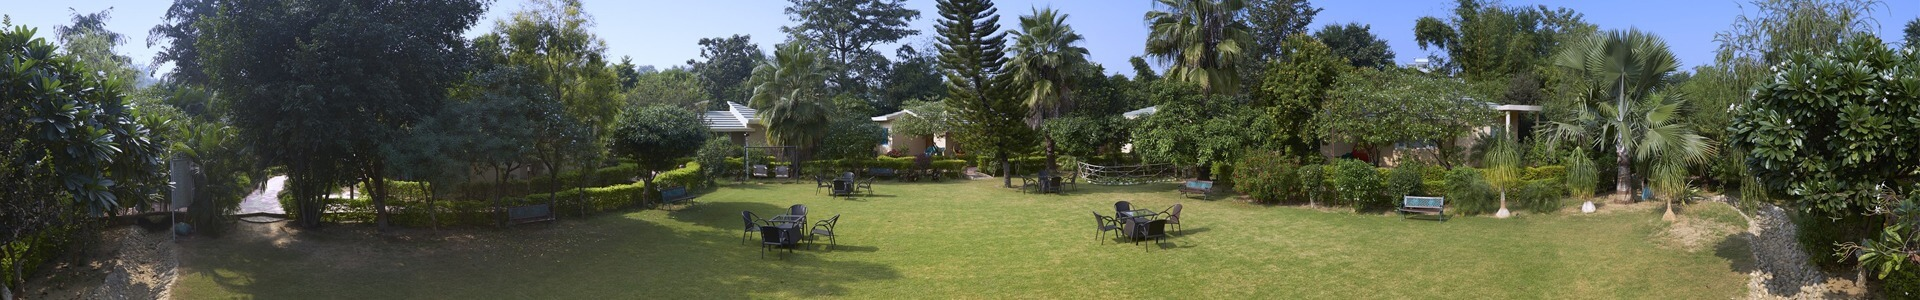 5 Star Resort in Corbett